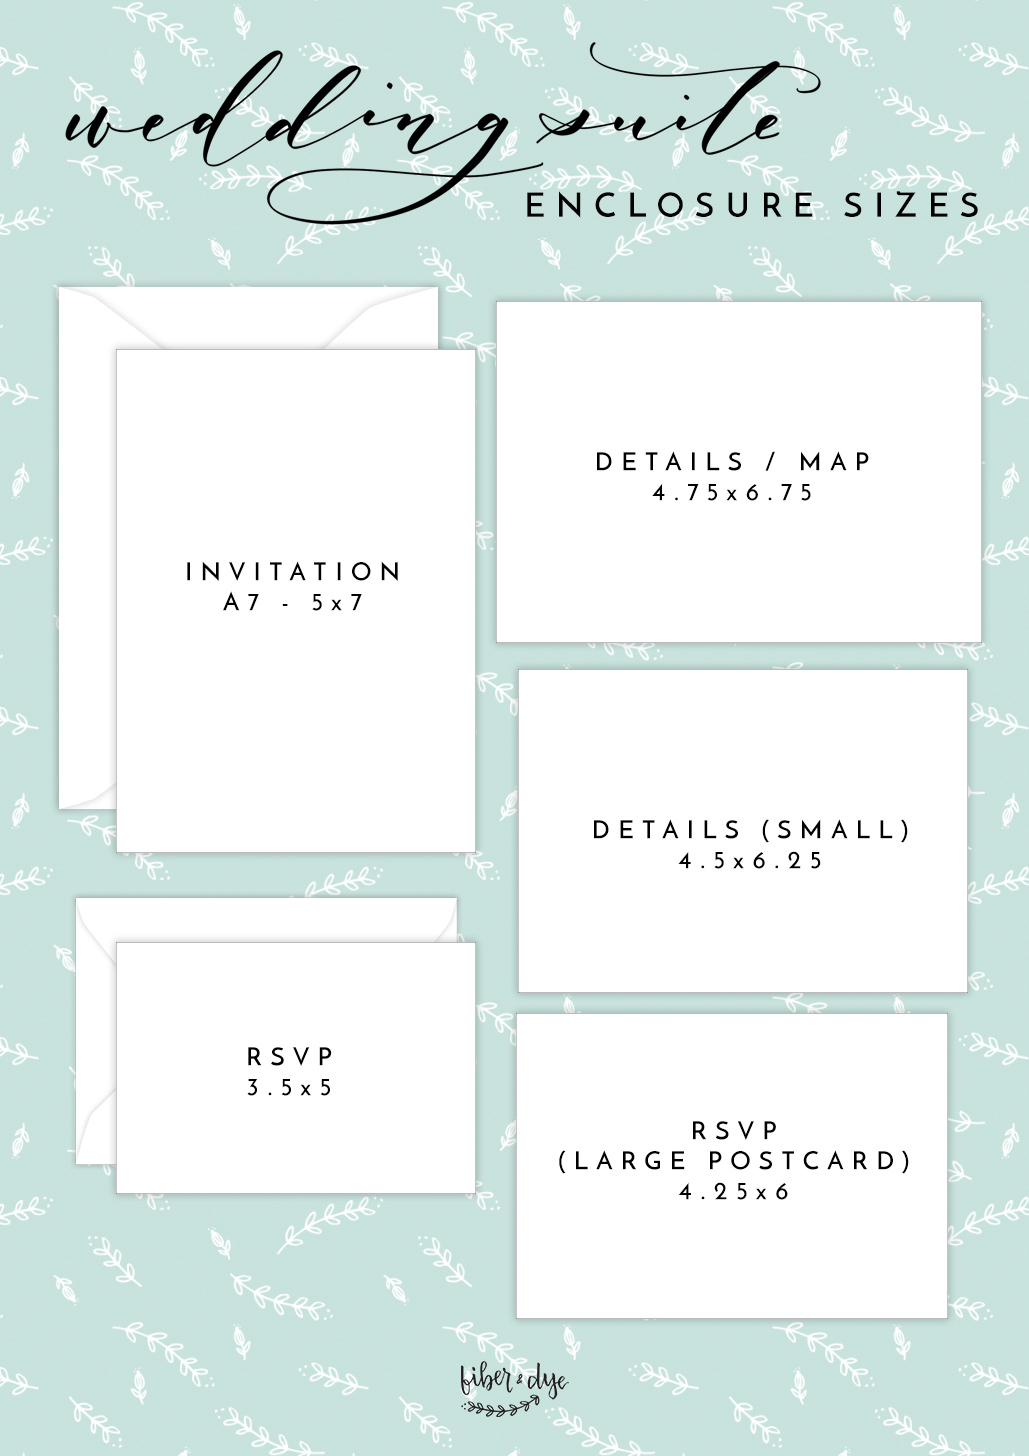 WeddingInvitationCardSize.jpg